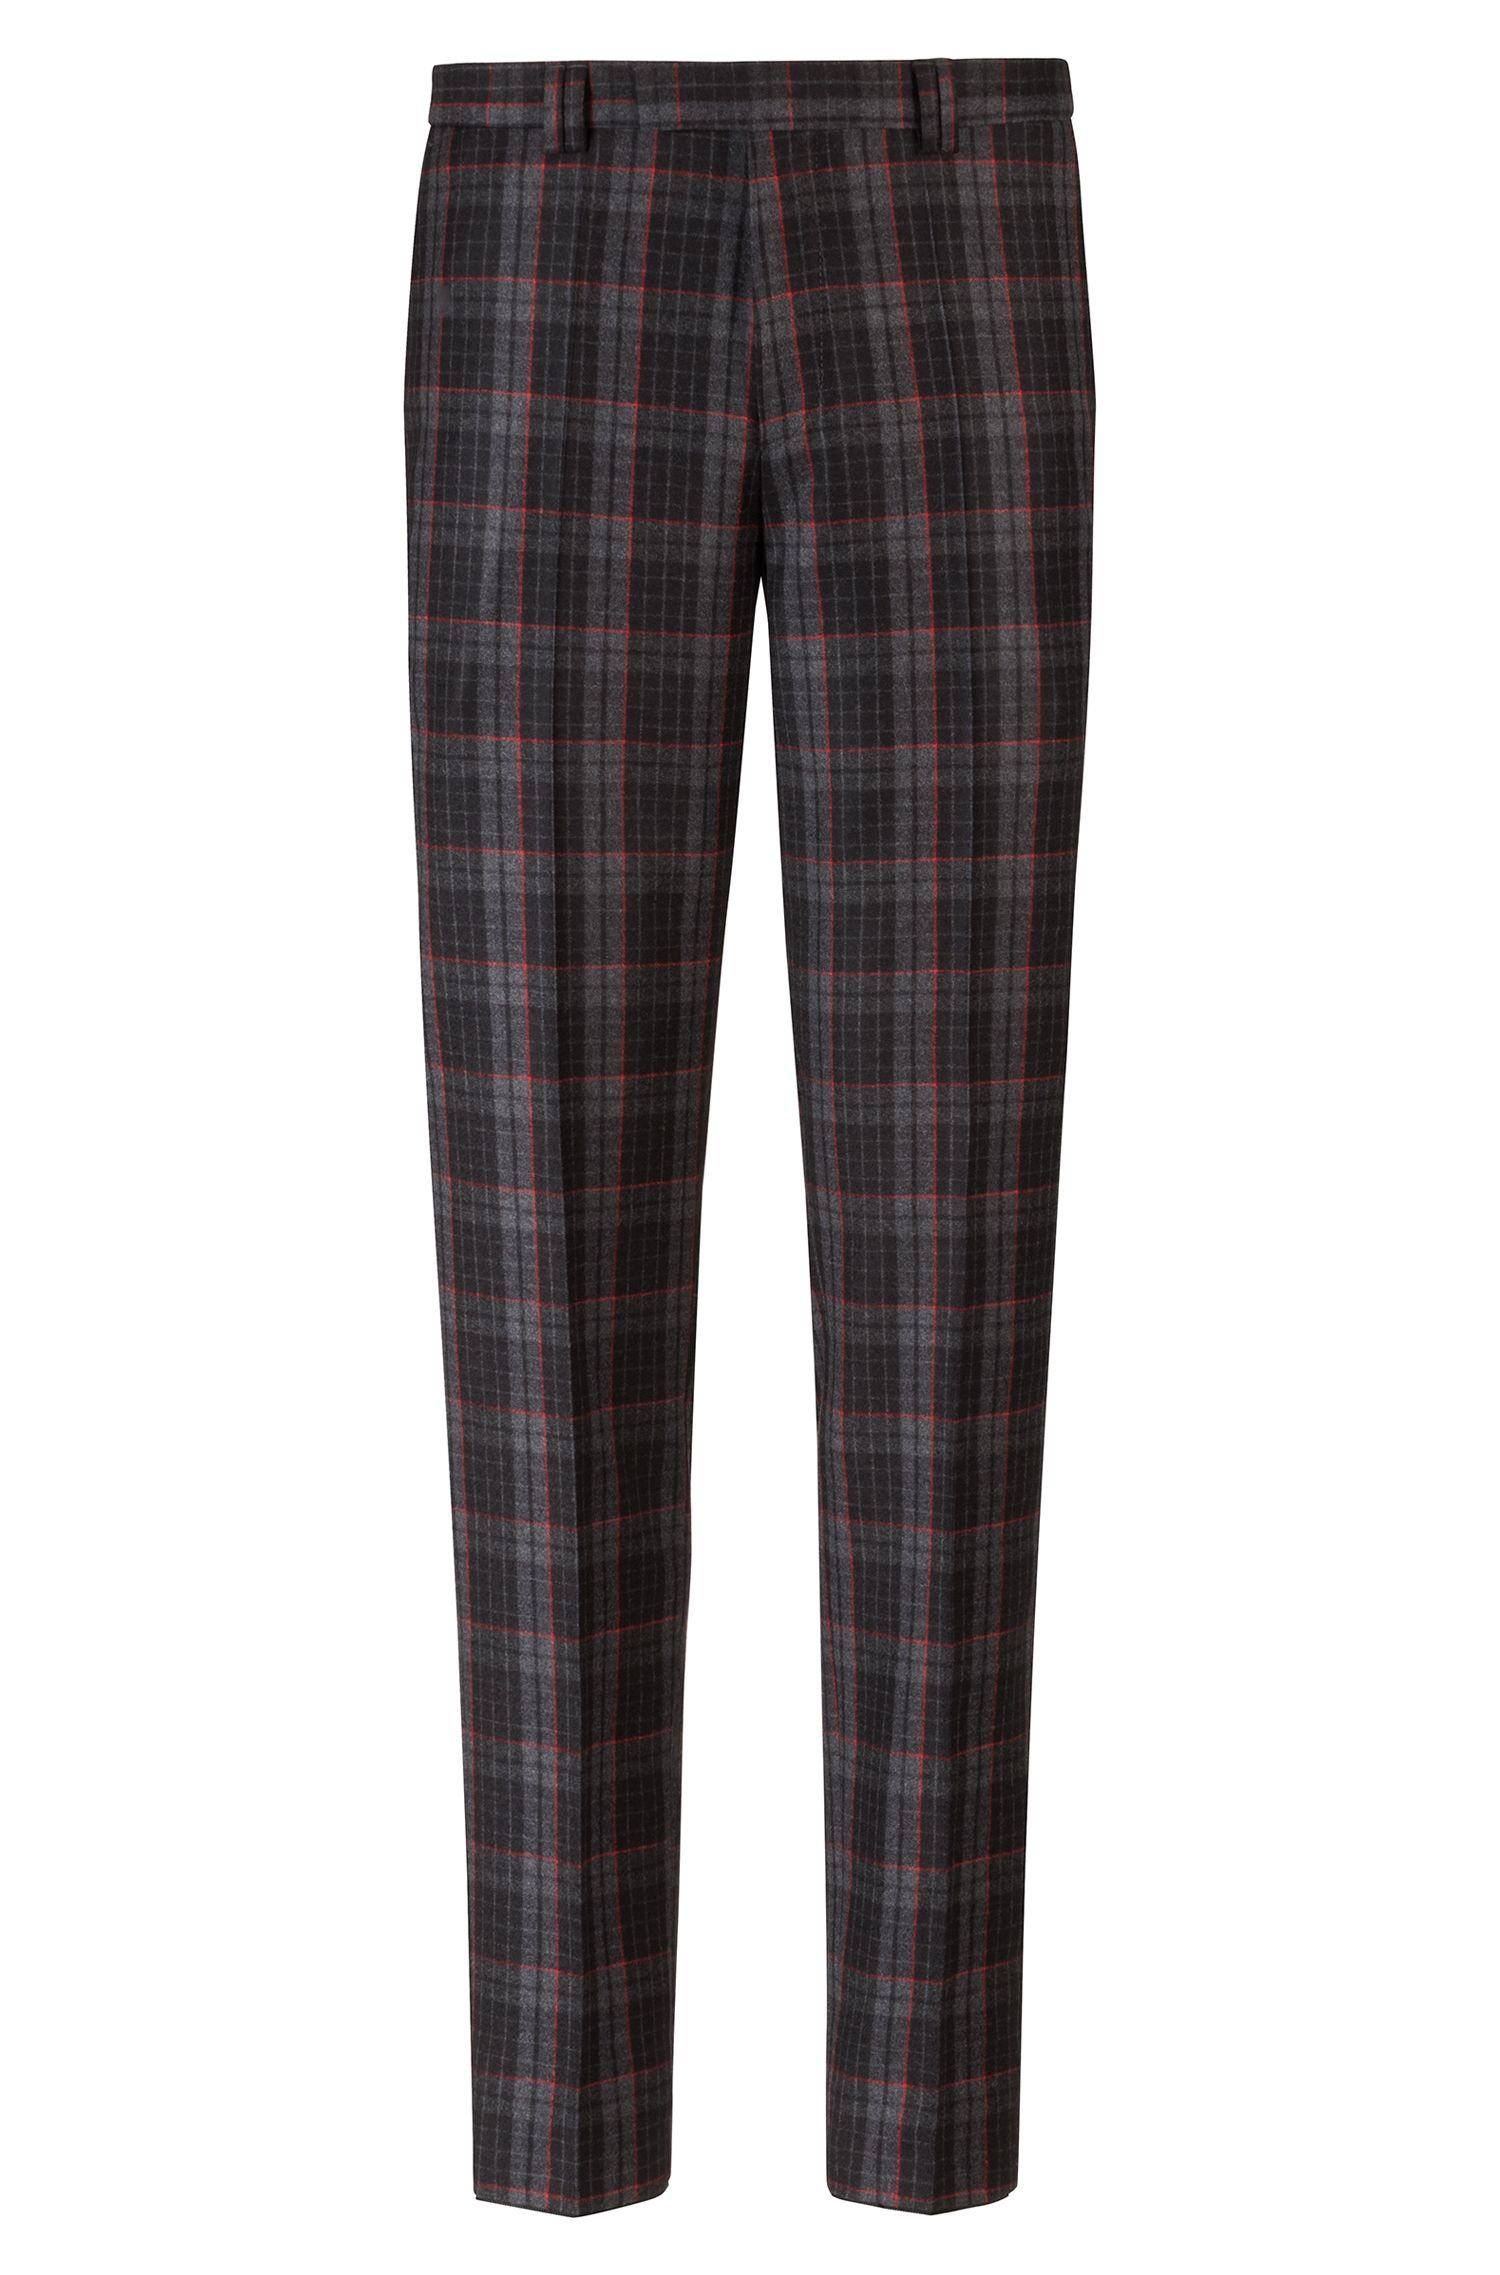 Extra-slim-fit virgin-wool pattern with Glen check pattern, Charcoal